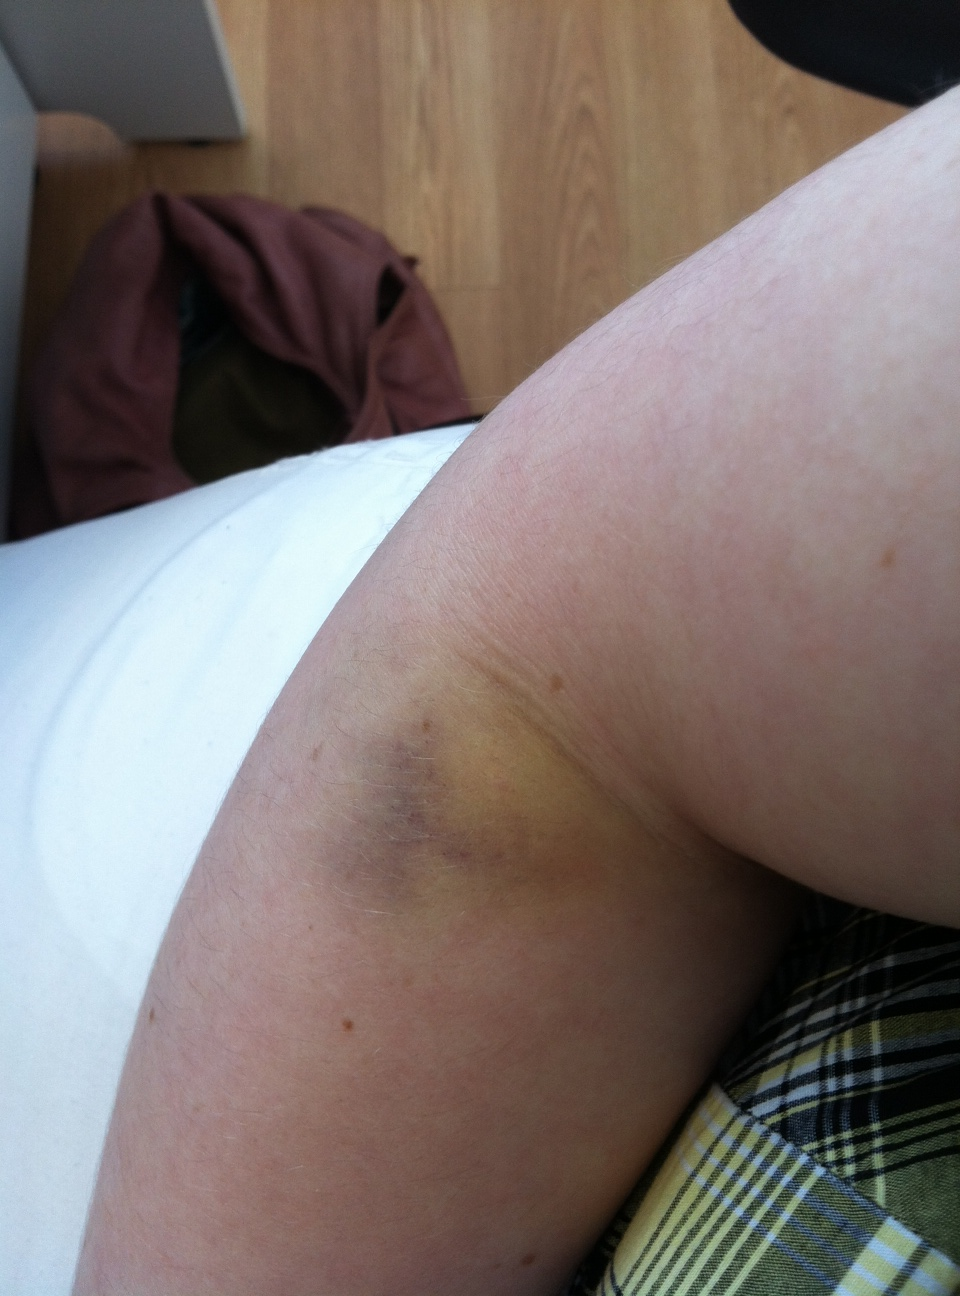 Bad Bruise On Arm